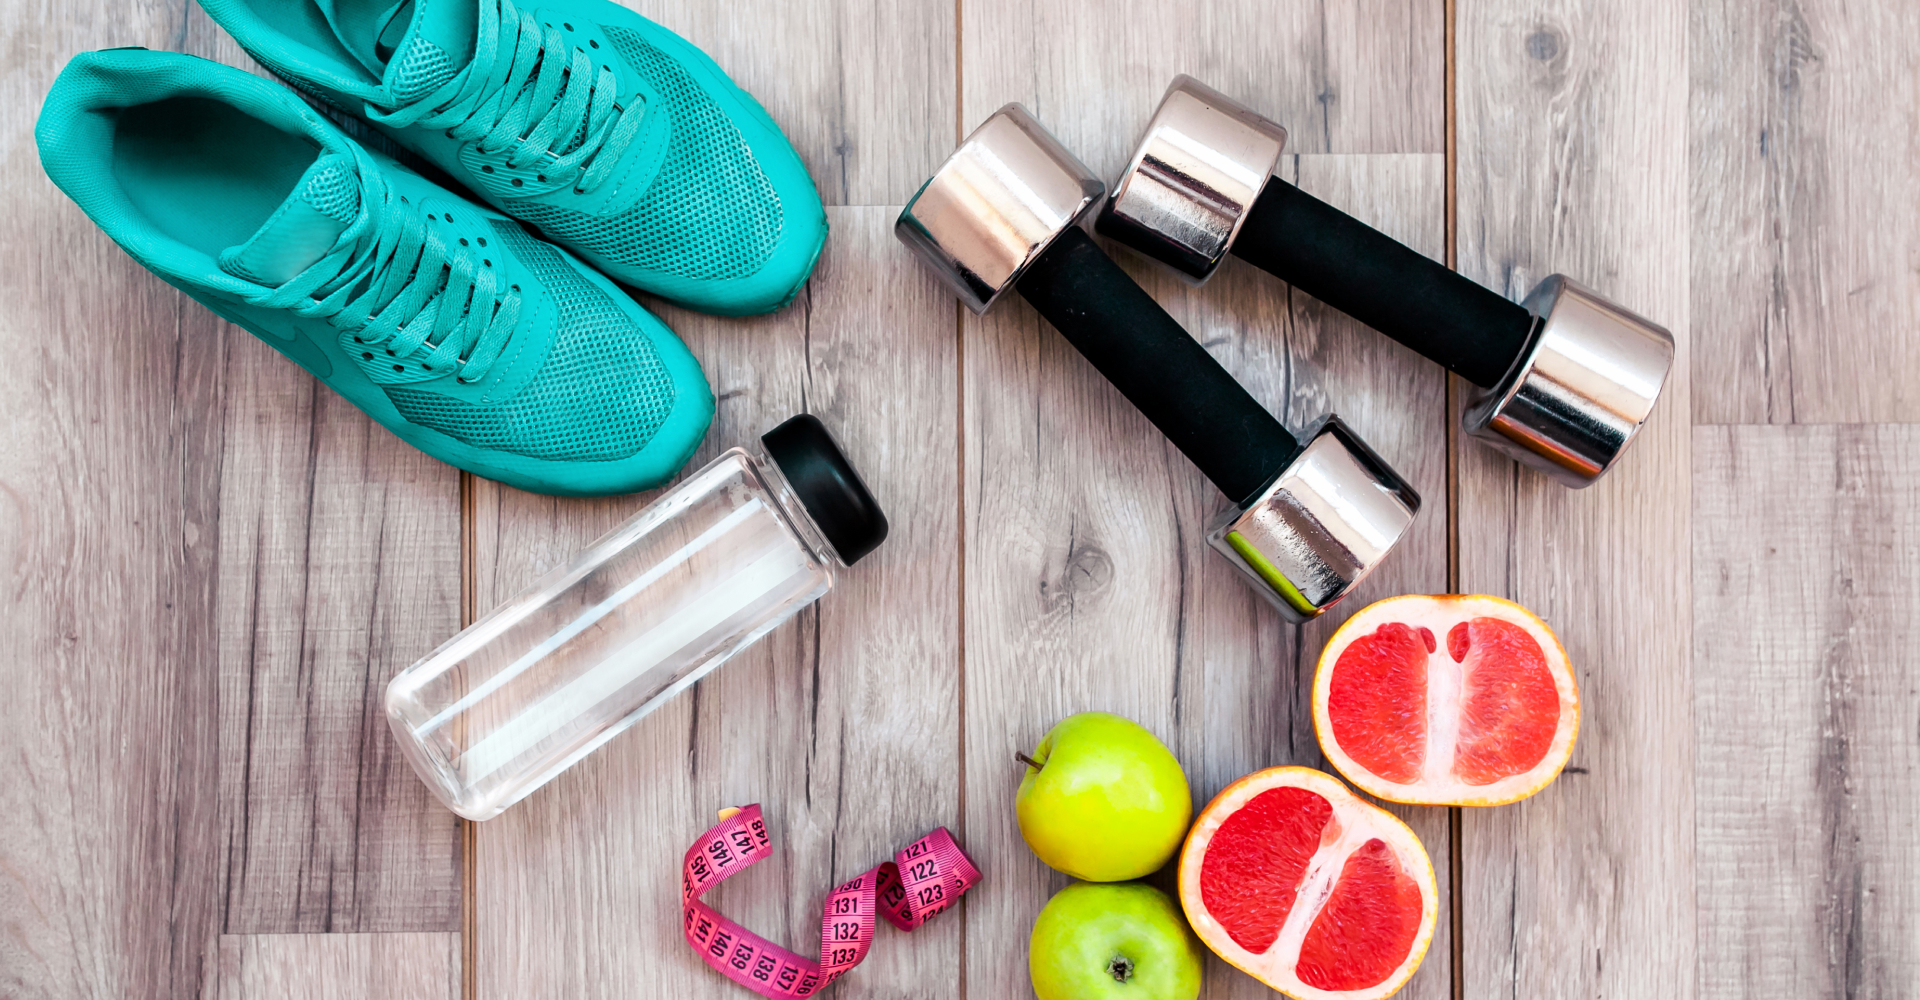 What to know about diabetes and fitness?